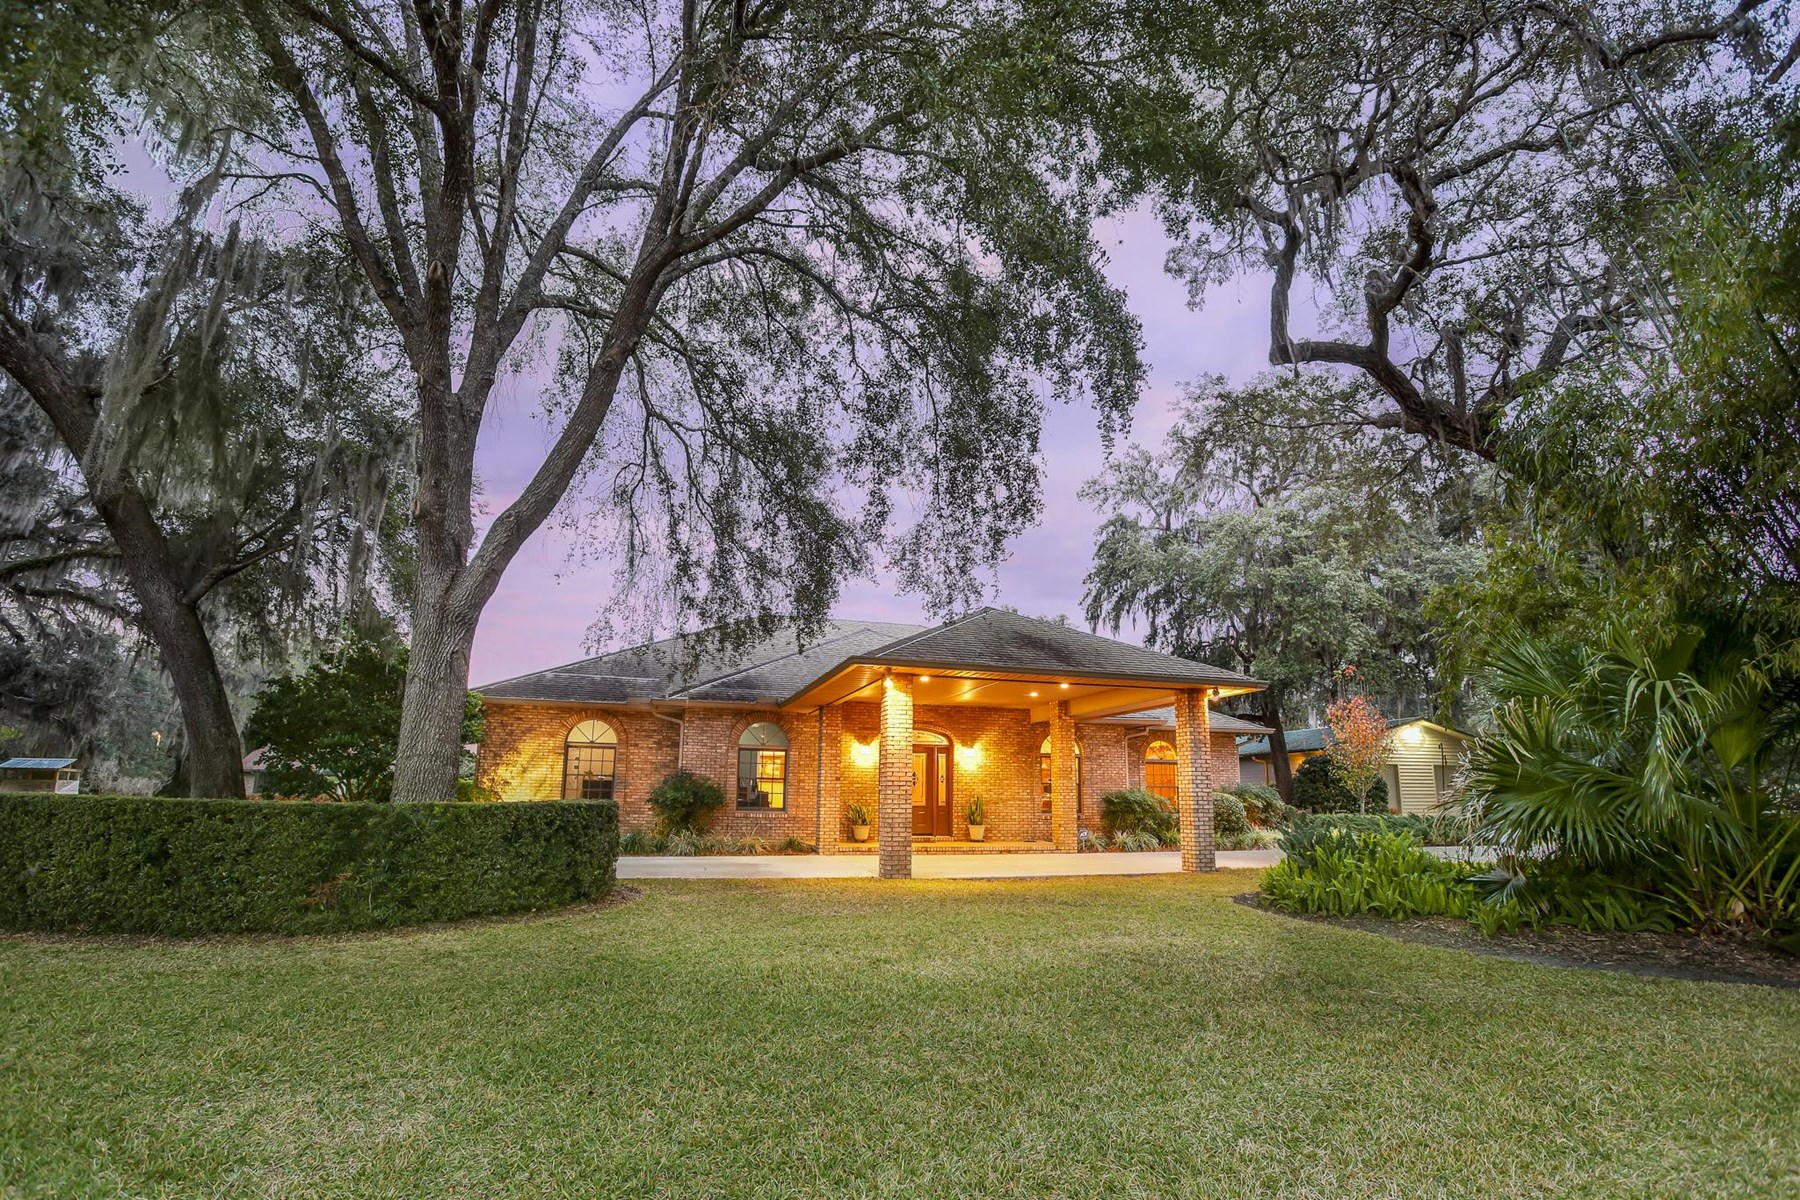 LUXURY HOME IN TOWN - Chiefland, Levy Coounty, Florida